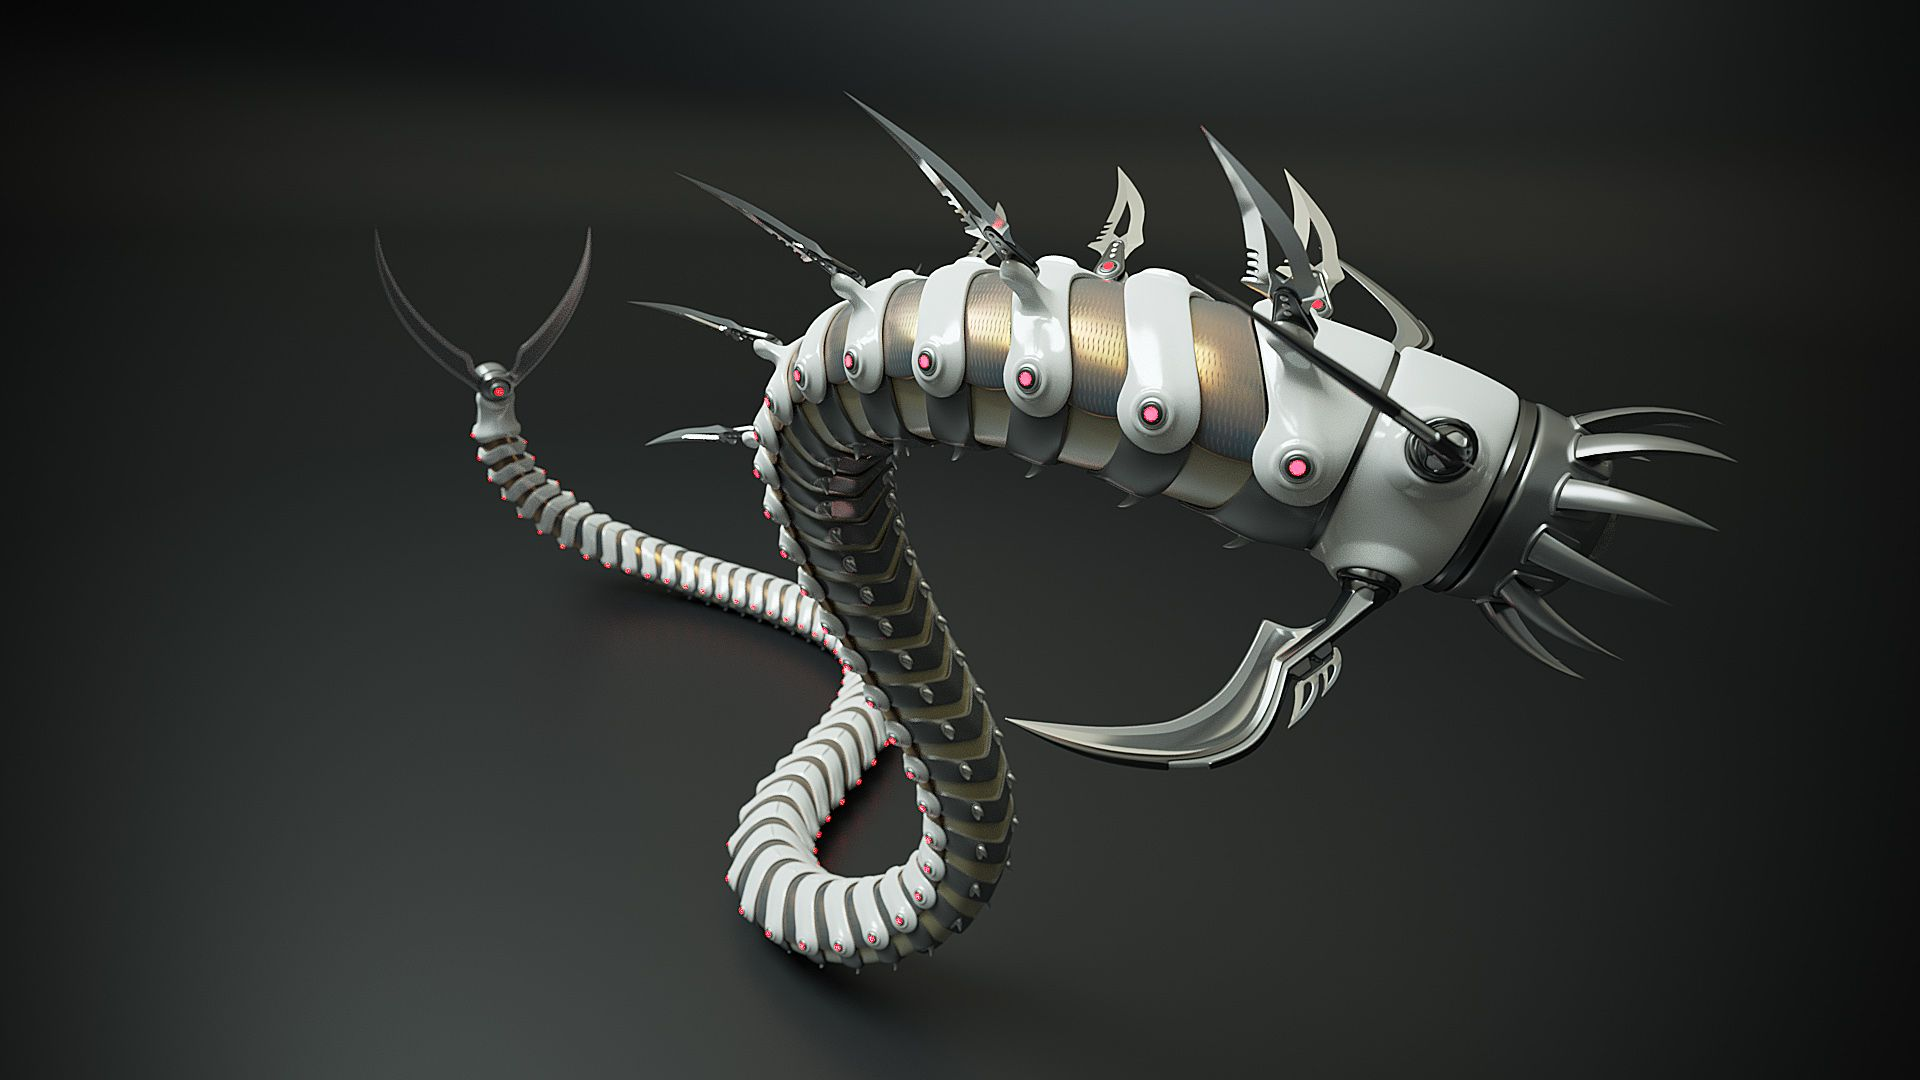 snake robot thesis Enjoy the cold, emotionless embrace of robot hugs snake types by robot hugs on september 27, 2017 at 12:01 am posted in: comic.